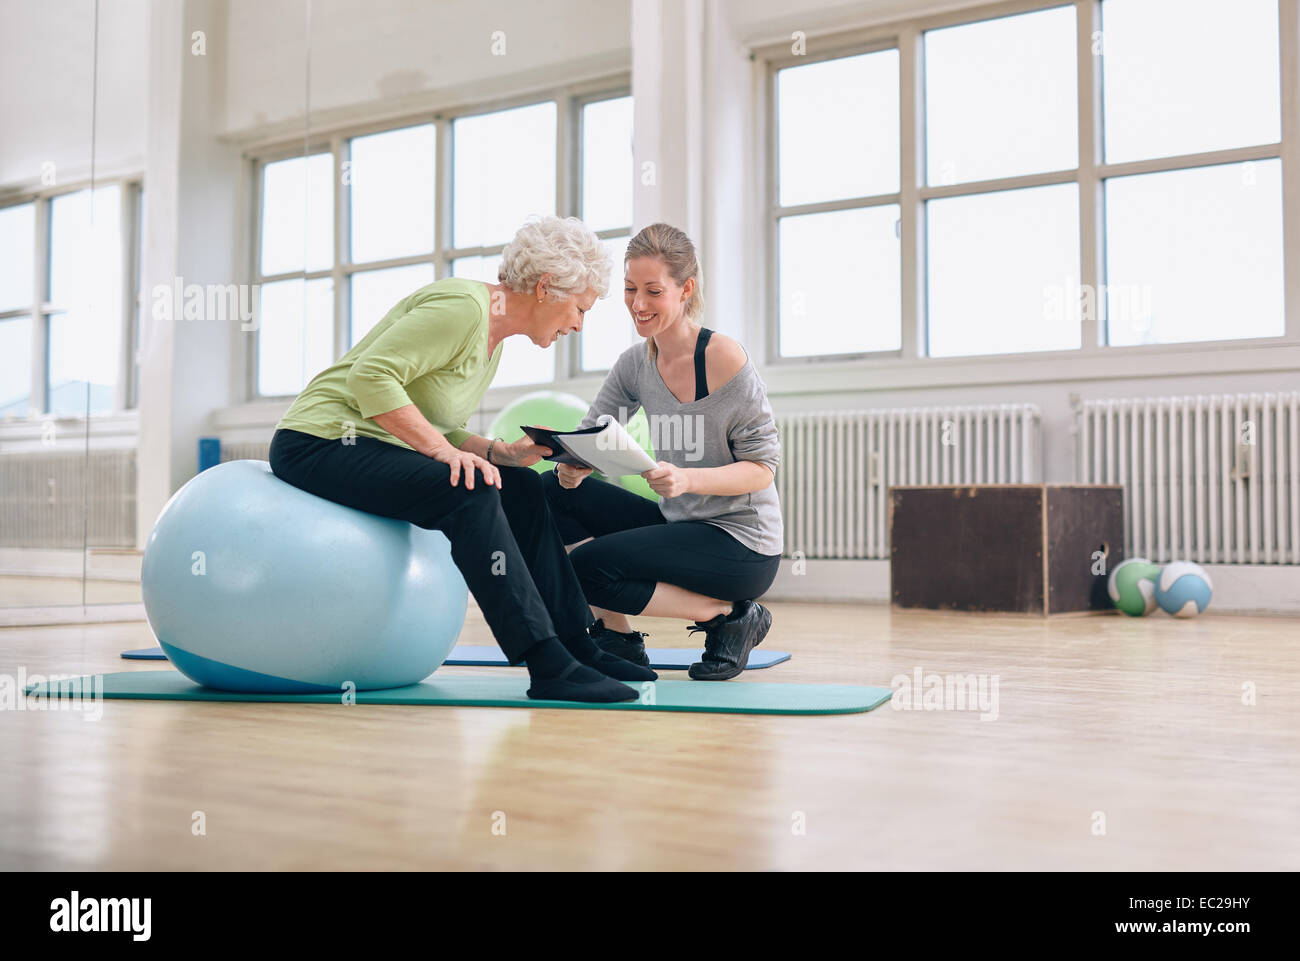 Elderly woman in a gym sitting on exercise ball and talking to her personal female trainer about exercise plan. - Stock Image